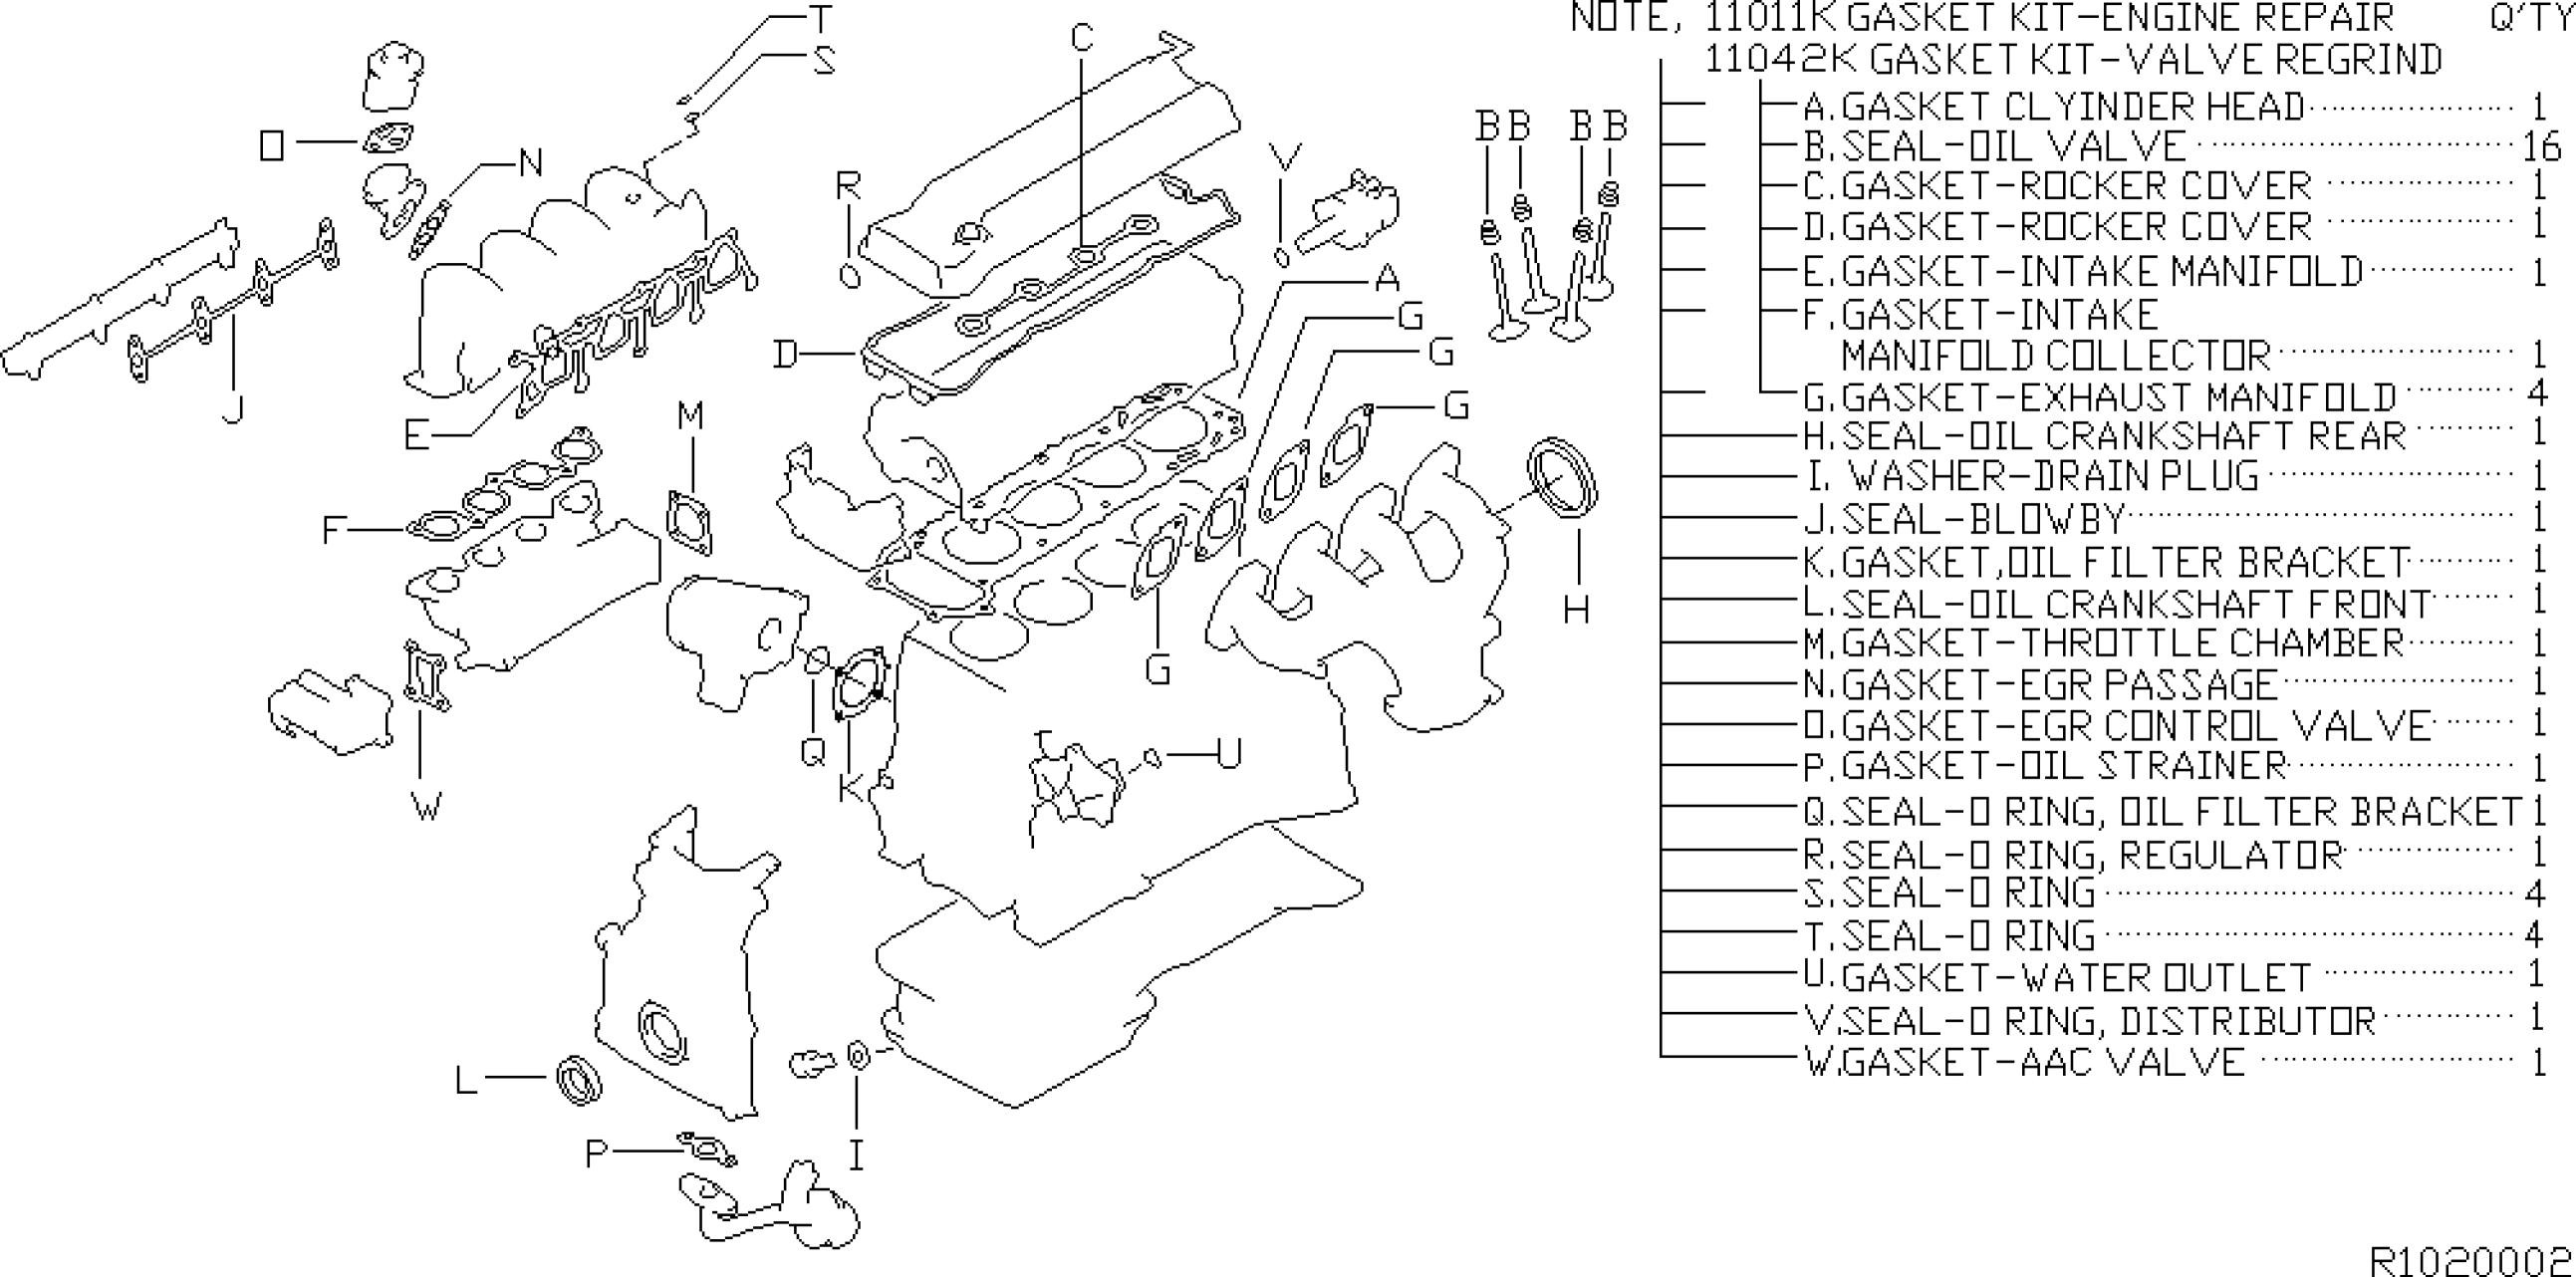 2002 Nissan Sentra Engine Diagram 2003 Nissan Altima 2 5 Fuse Box Diagram Reinvent Your Wiring Diagram • Of 2002 Nissan Sentra Engine Diagram